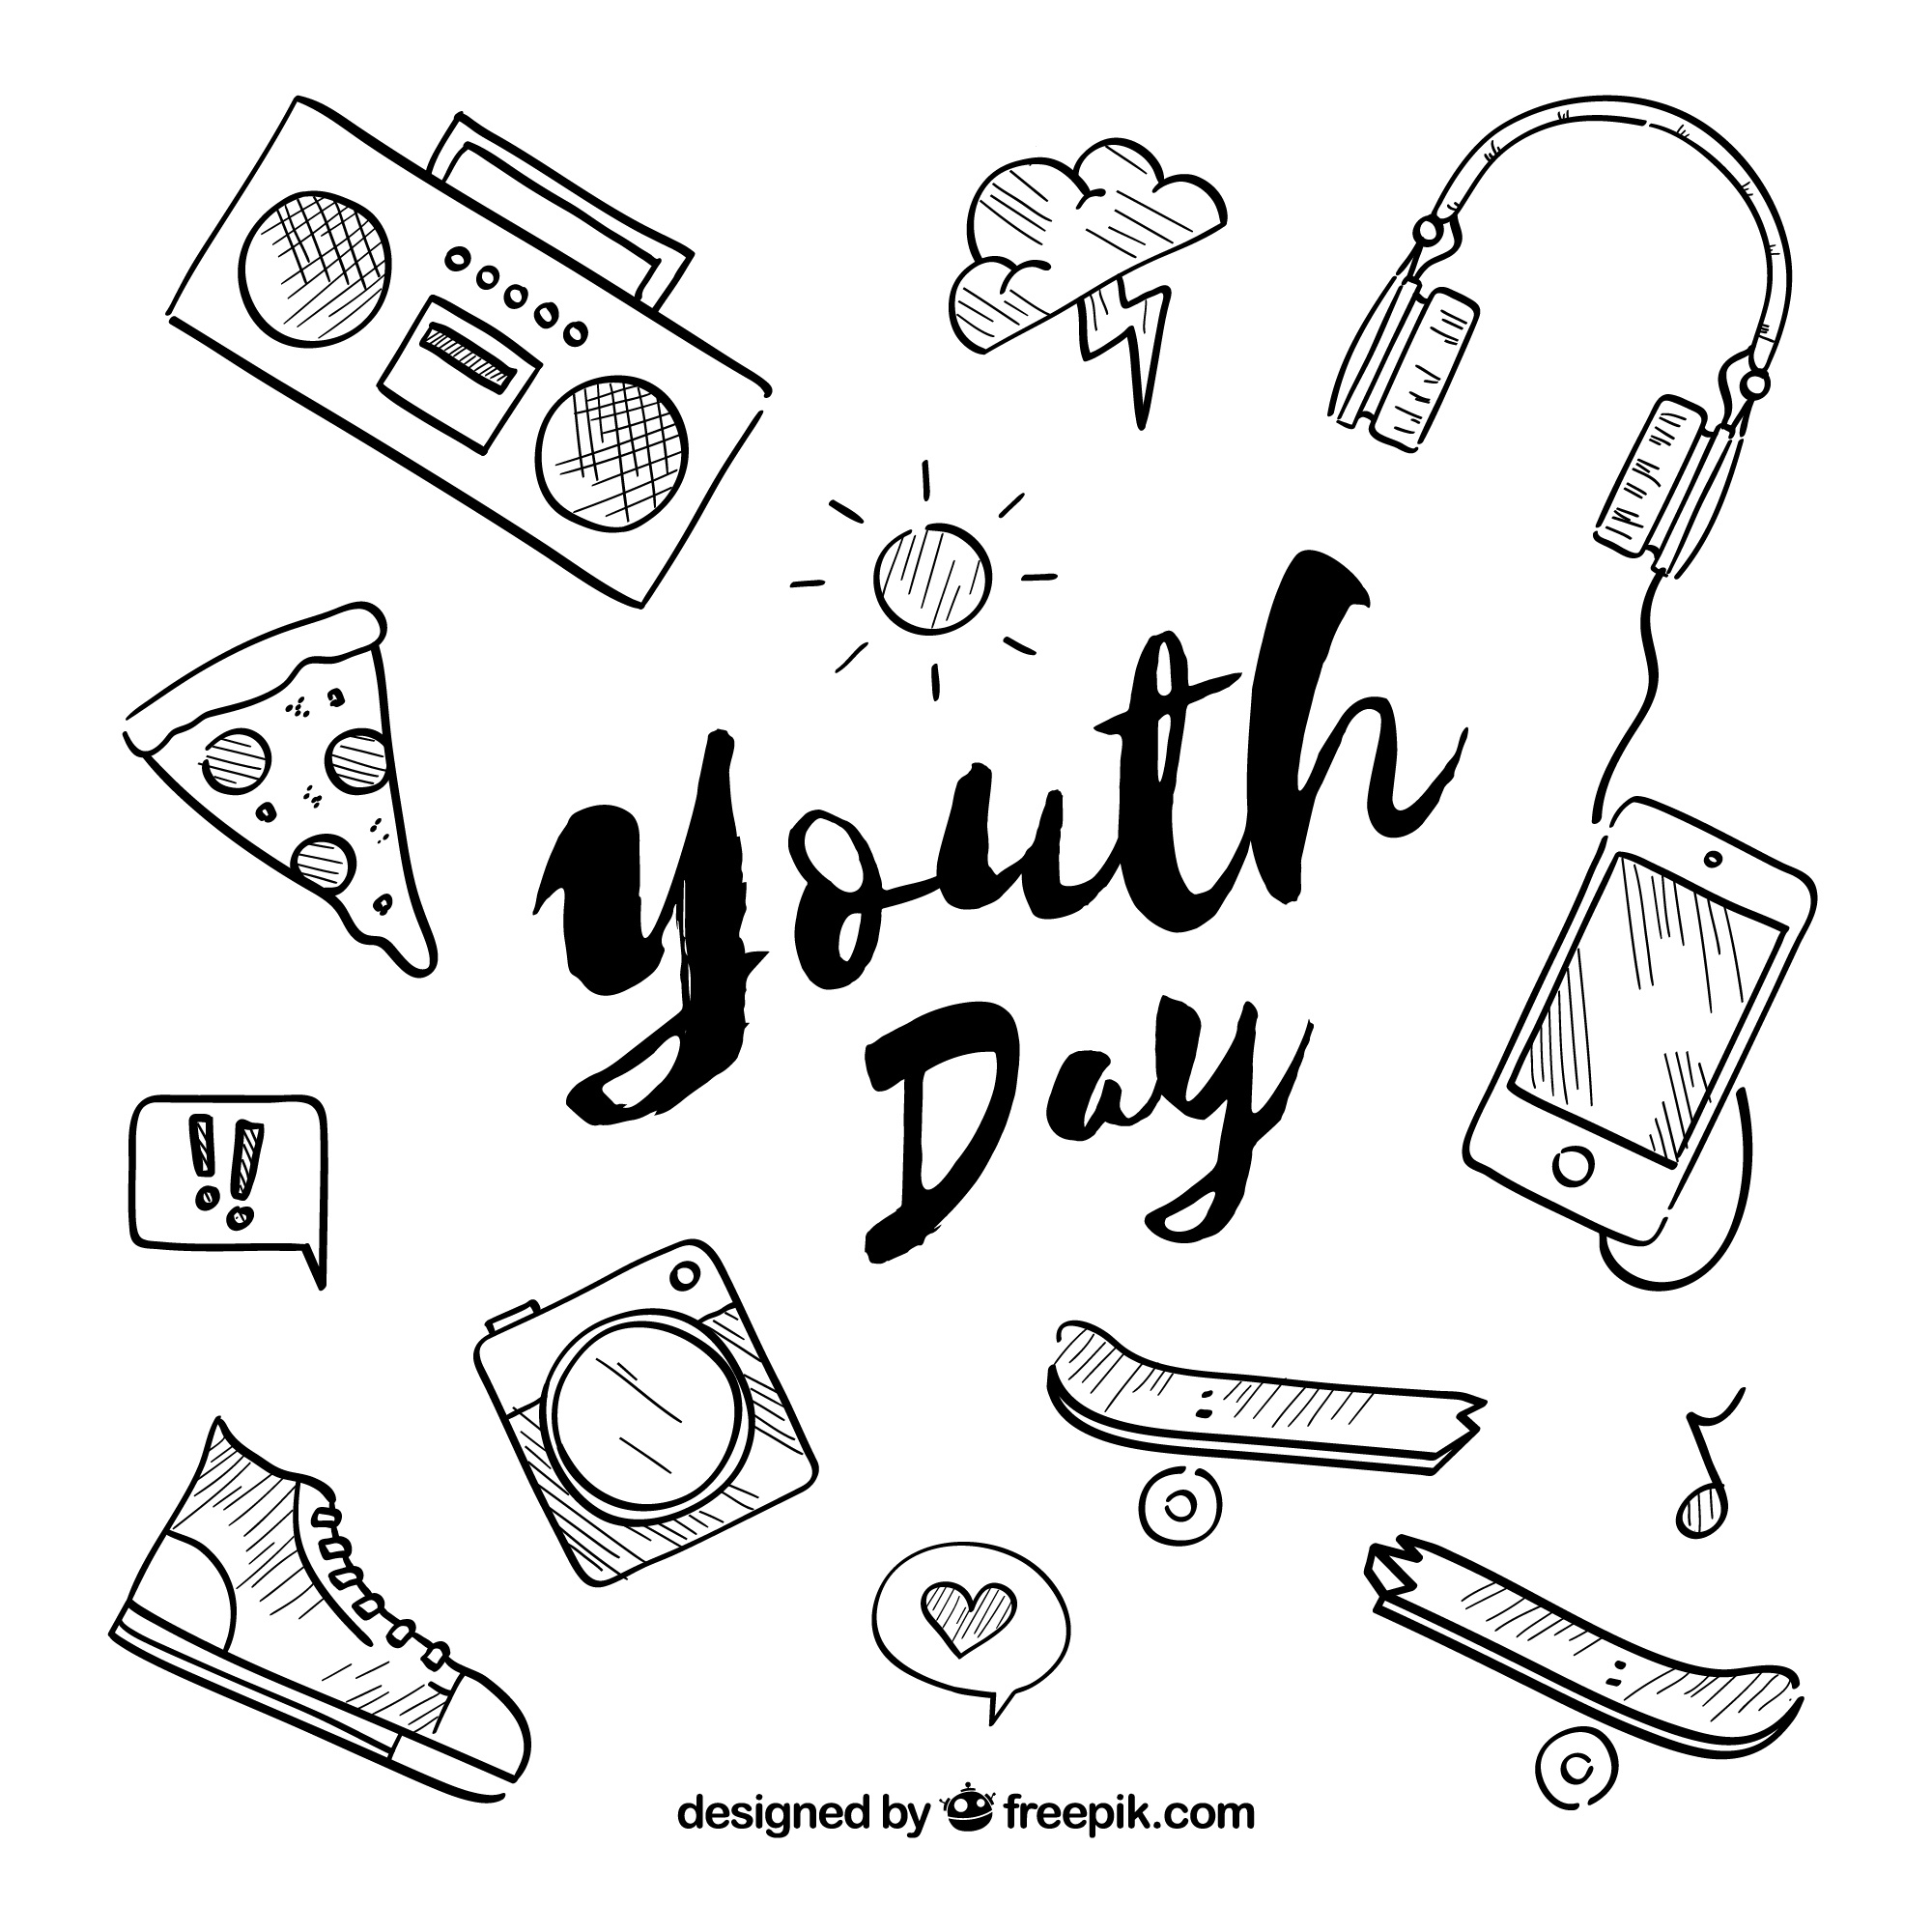 Youth day background with different elements